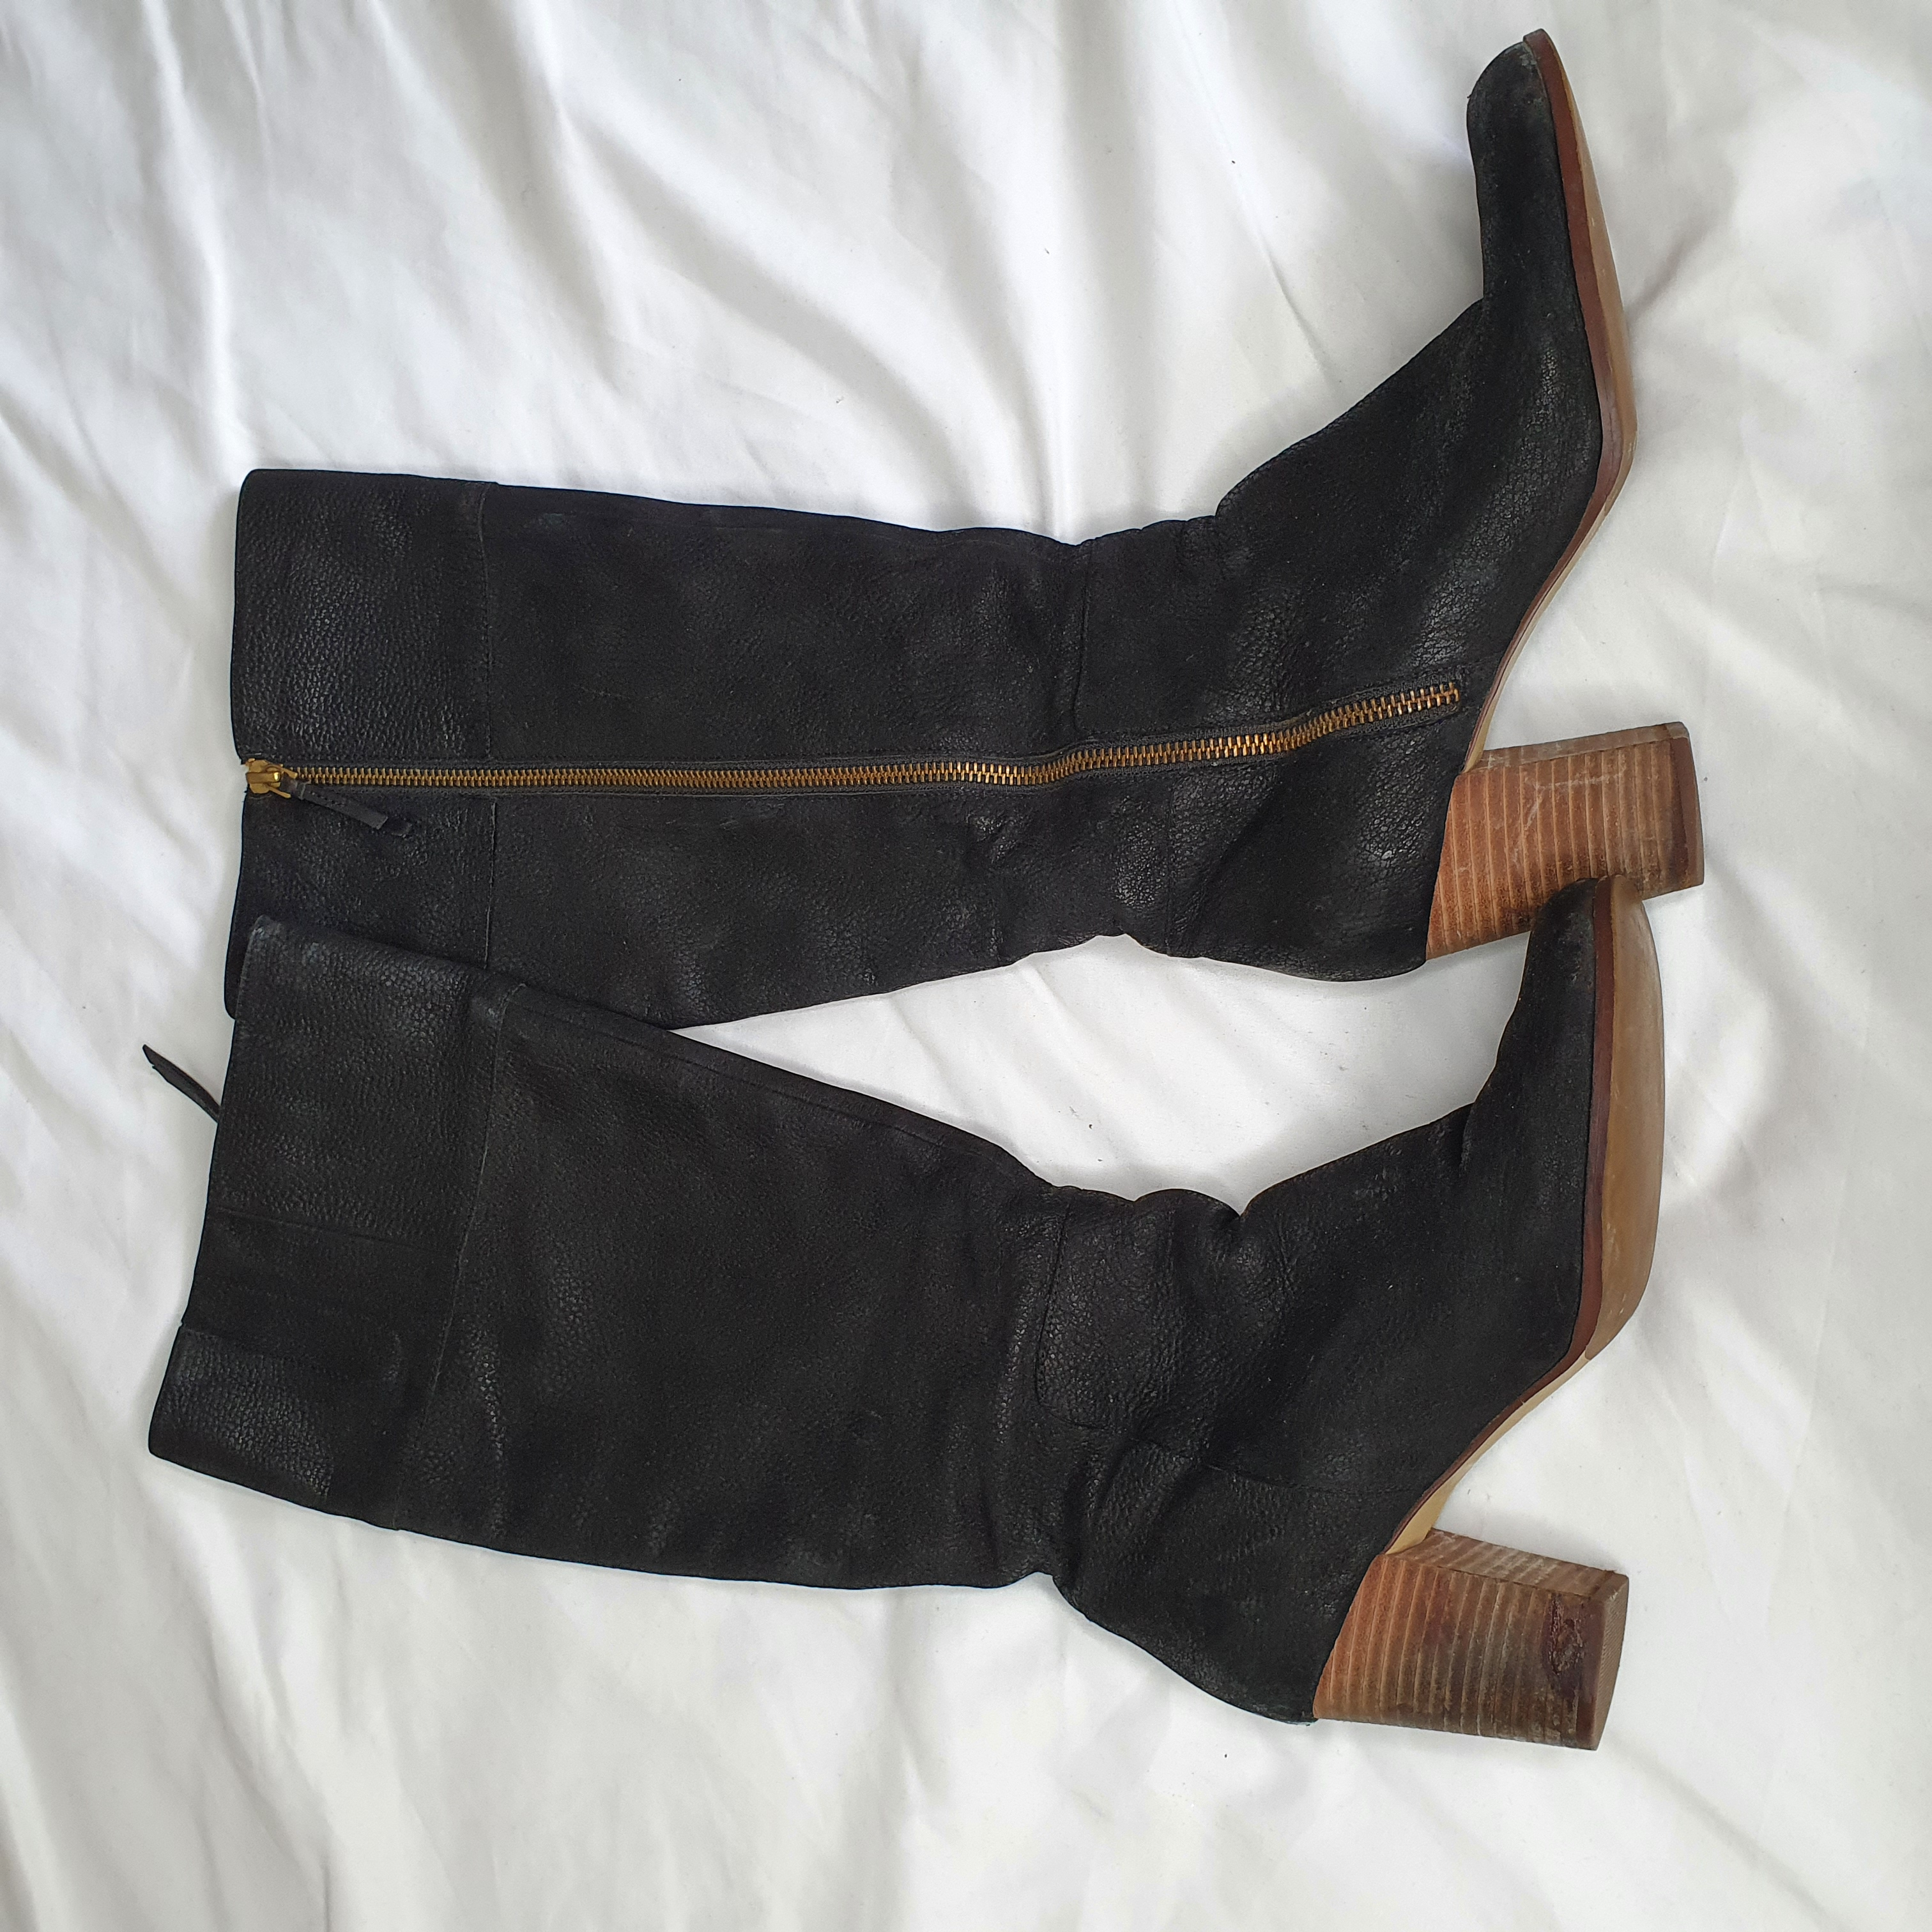 Image of Cole Haan Tall black boots